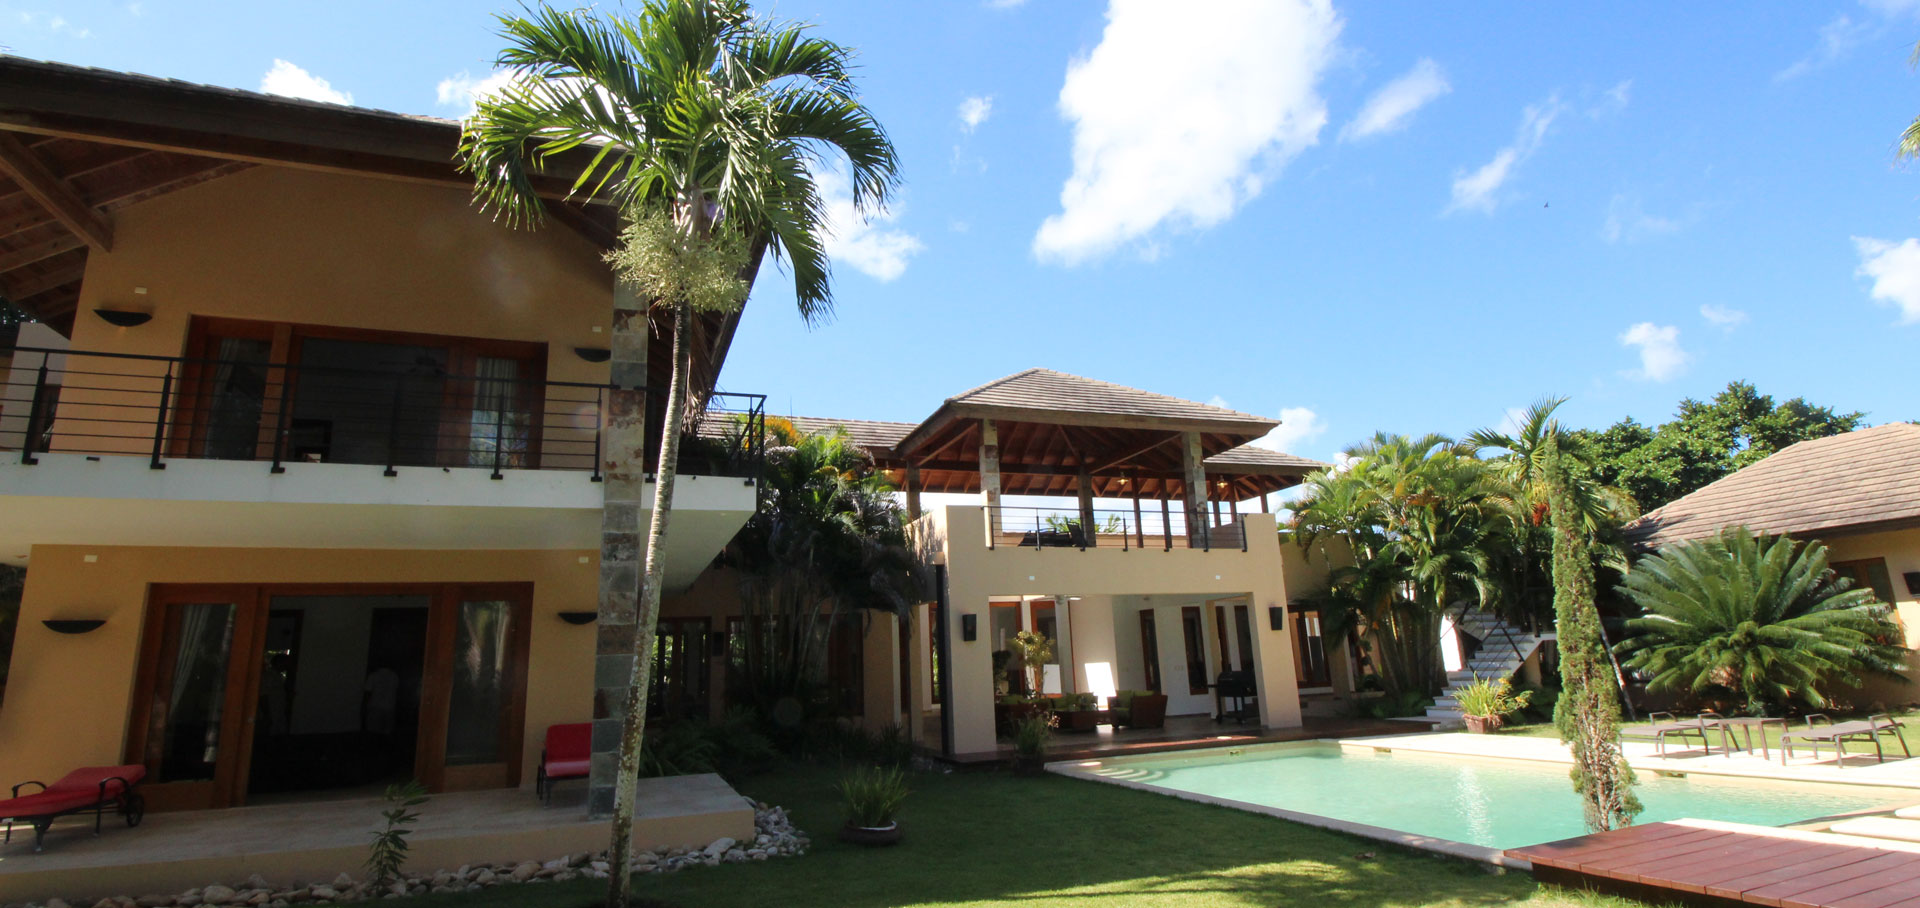 #0 Beautiful Villa with 6 bedrooms in a gated community Cabarete